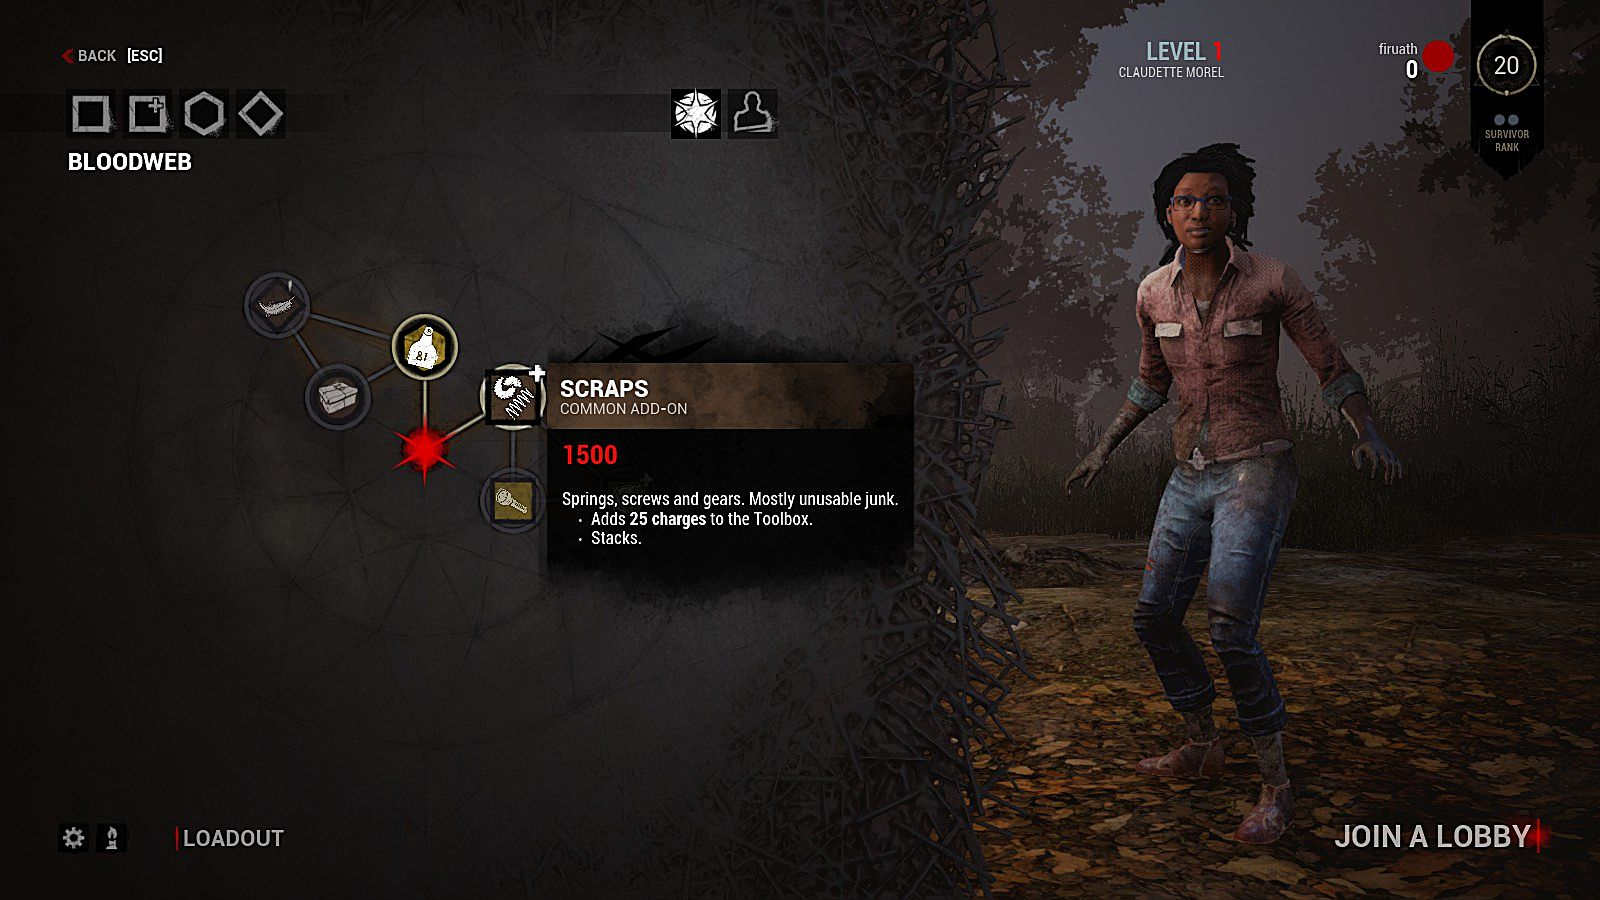 Dead By Daylight Offers Chilling Asymmetrical Gameplay